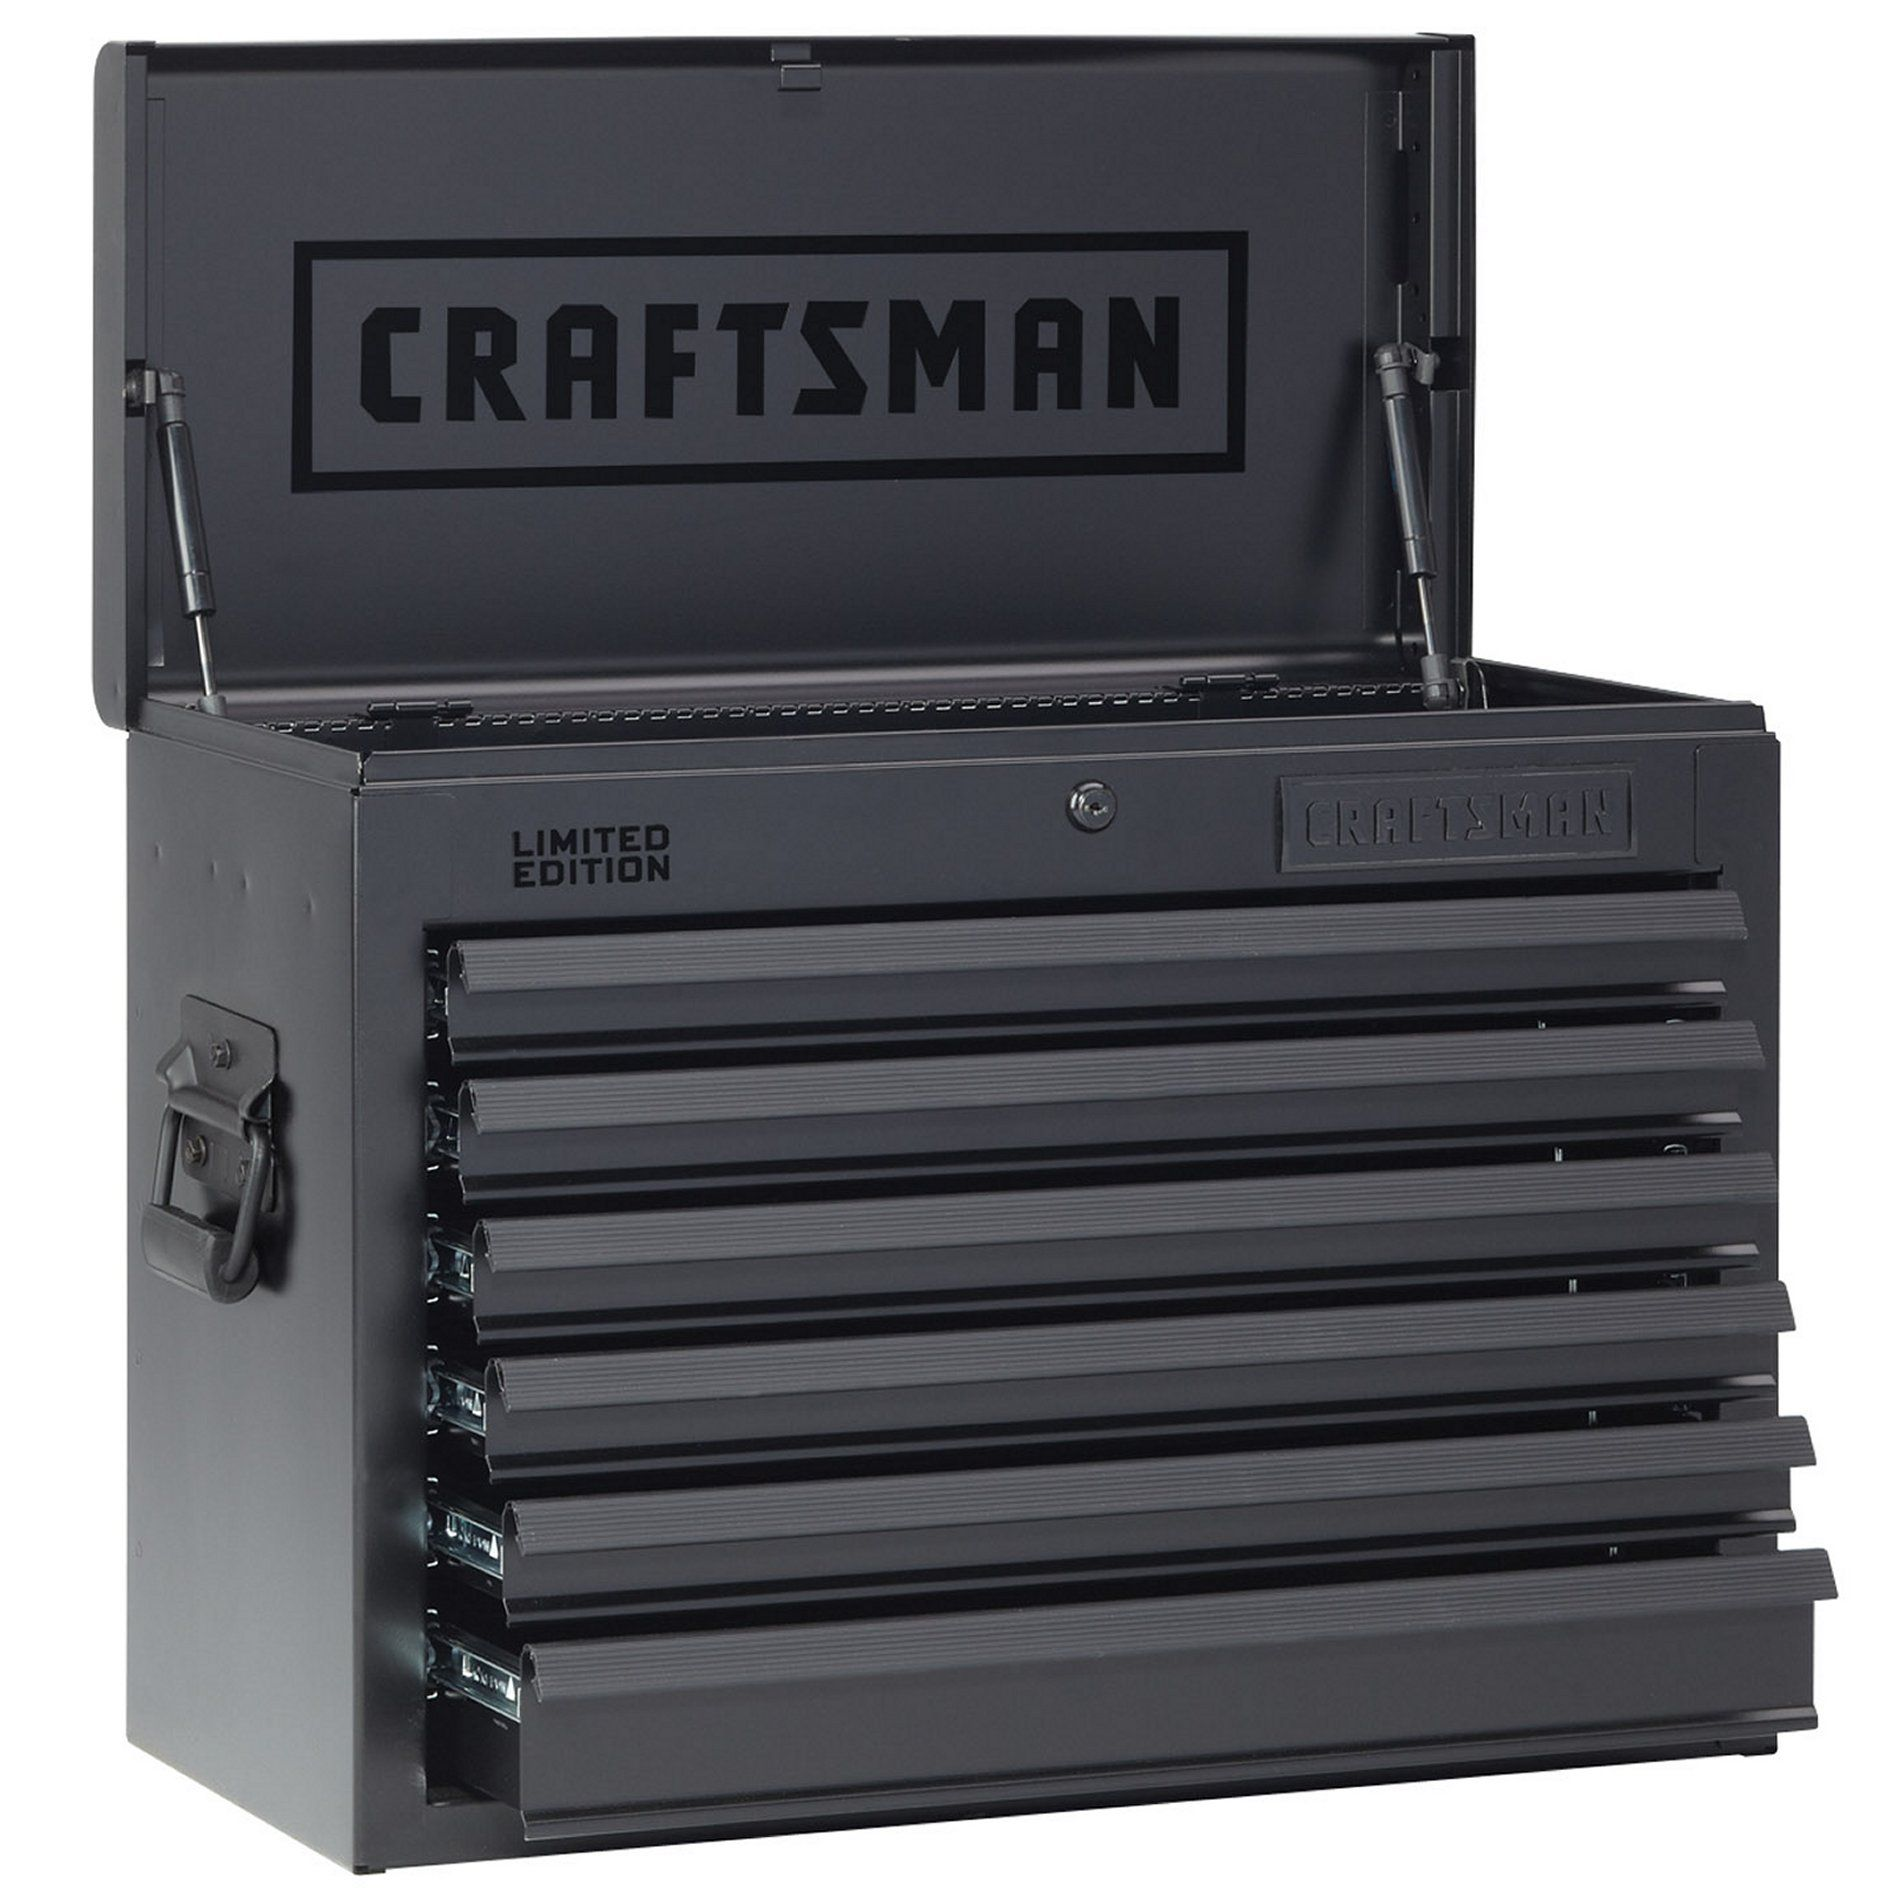 Craftsman 6 Drawer Rolling Cabinet Craftsman 26 In Wide 6 Drawer Heavy Duty Top Chest Flat Black